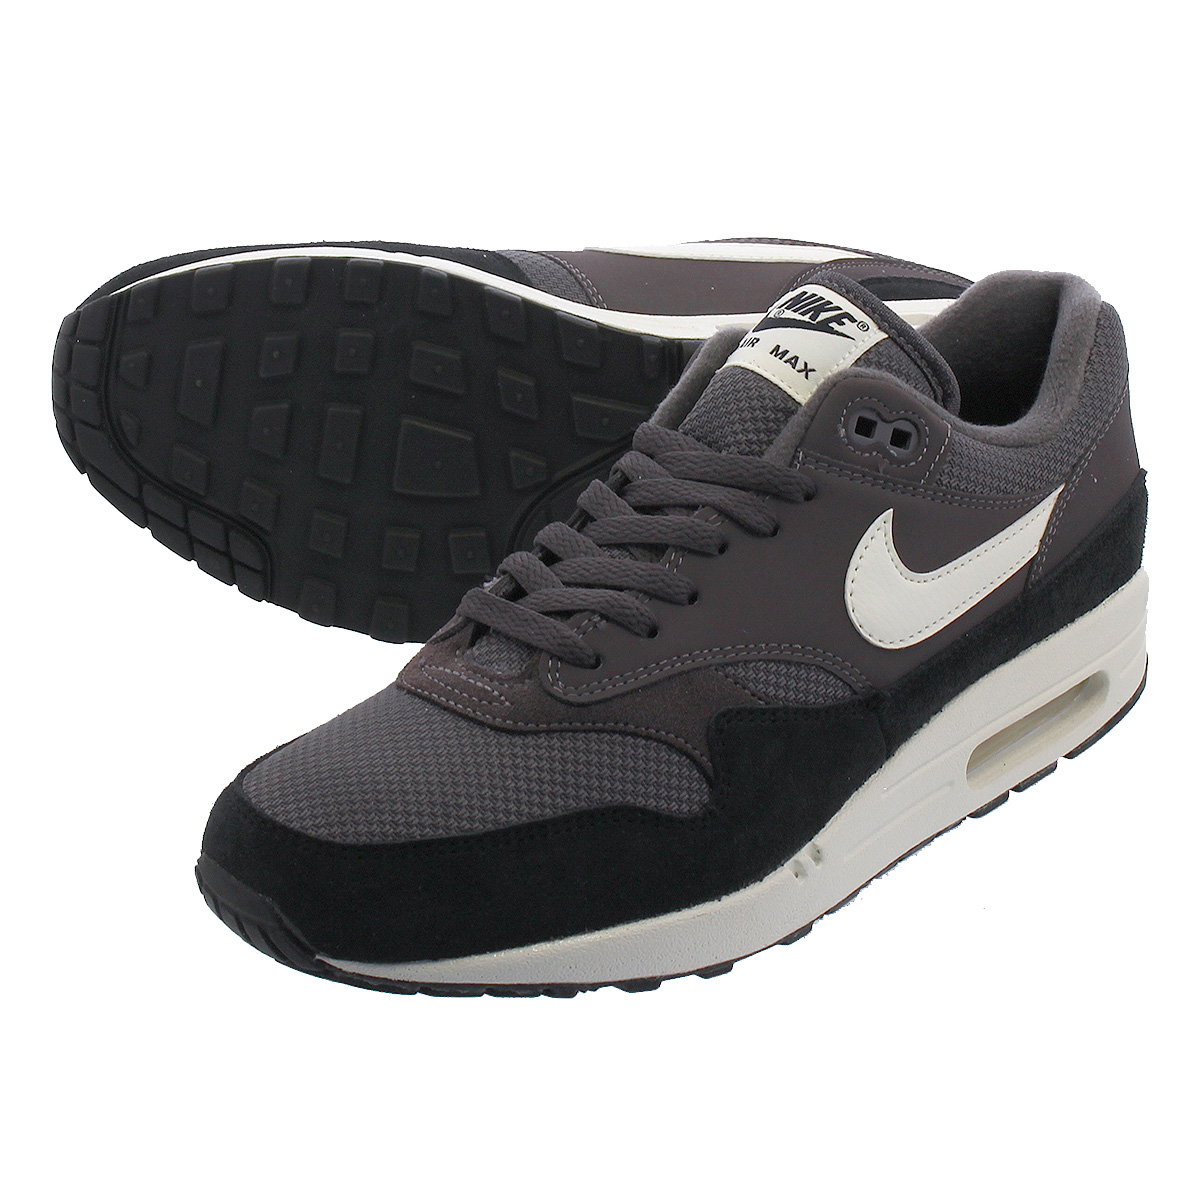 on sale cccad 09d9b NIKE AIR MAX 1 Kie Ney AMAX 1 THUNDER GREY SAIL SAIL BLACK ah8145-012